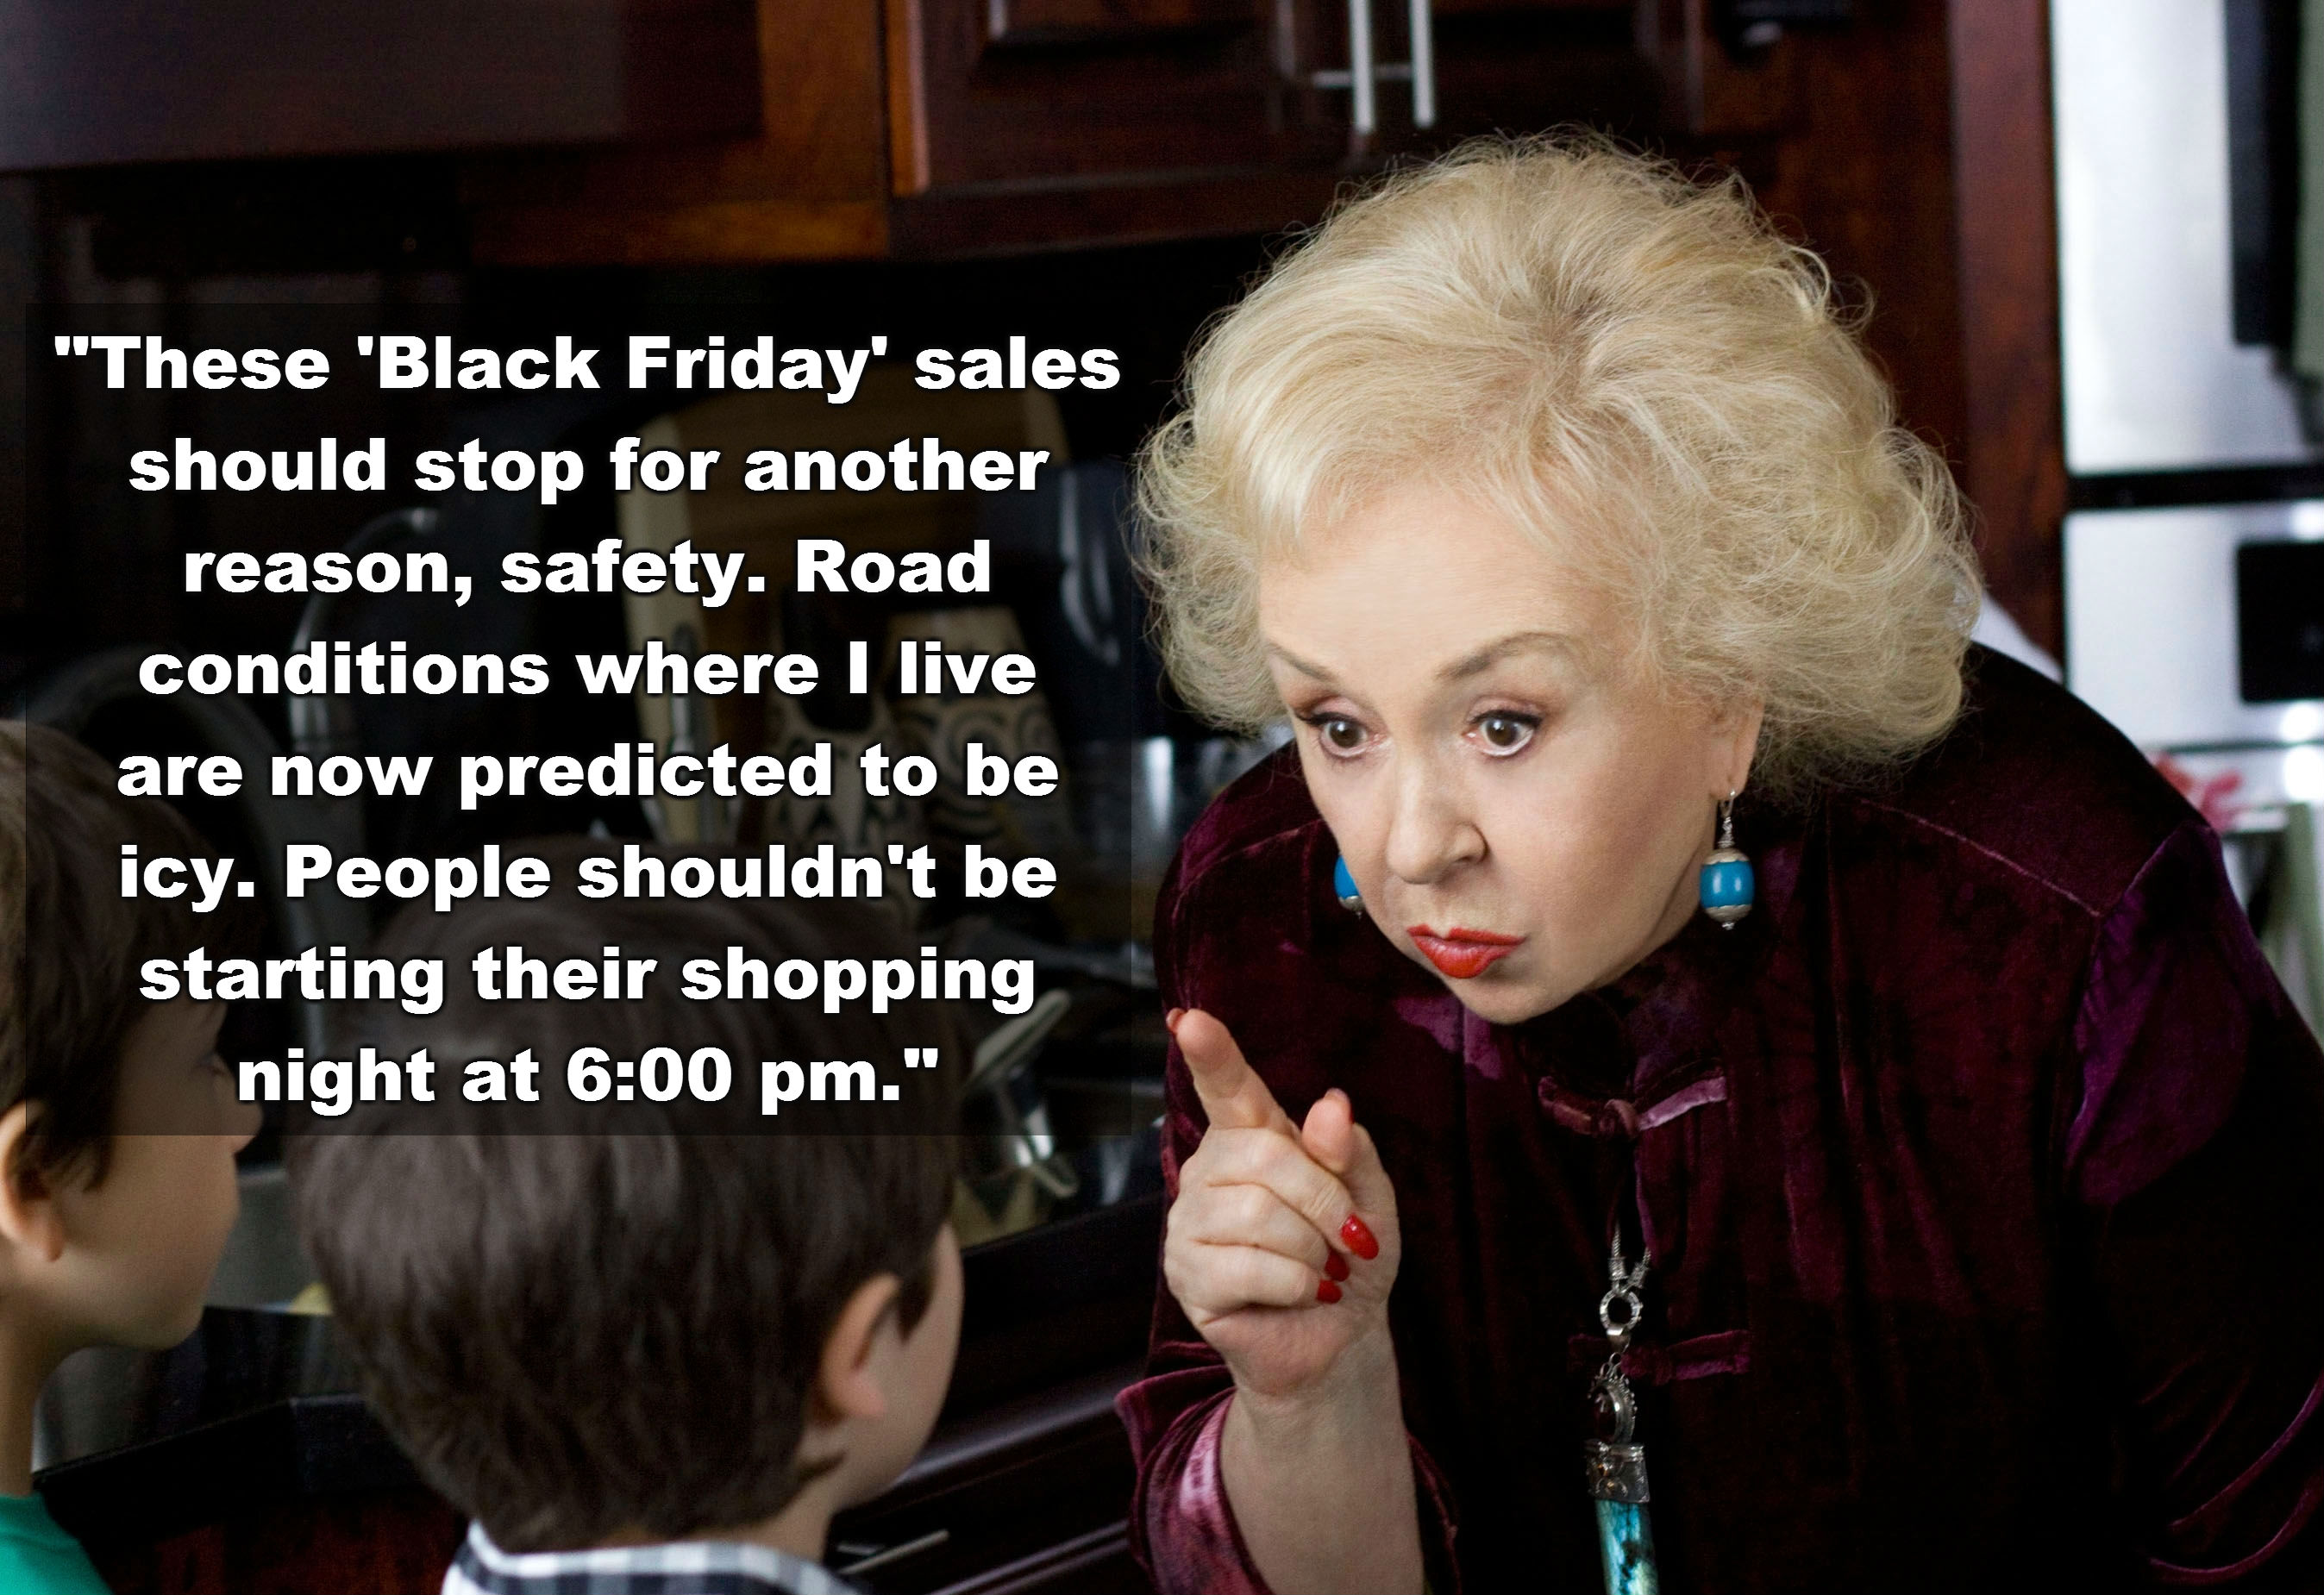 Black Friday comments